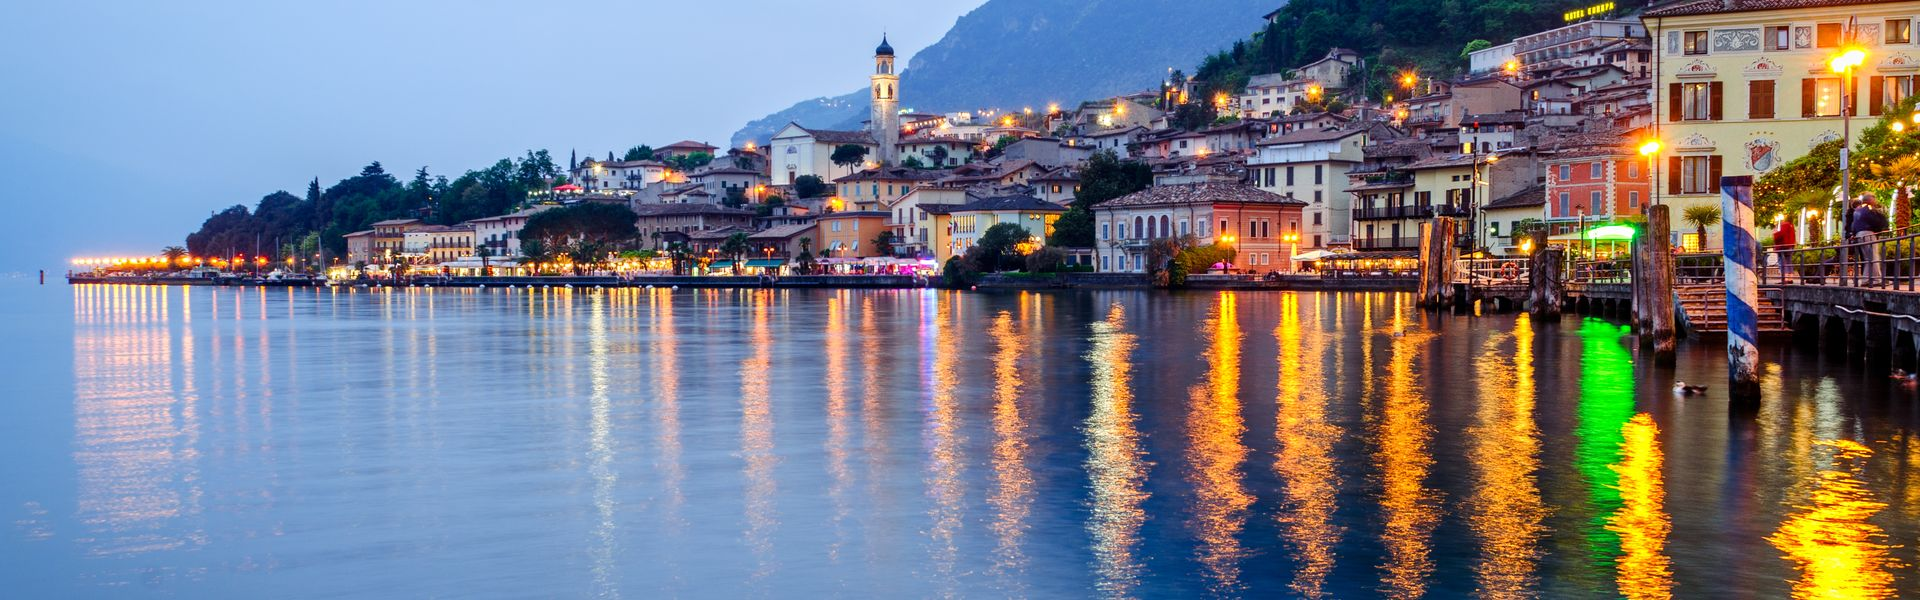 Last-minute camping holidays on Lake Garda